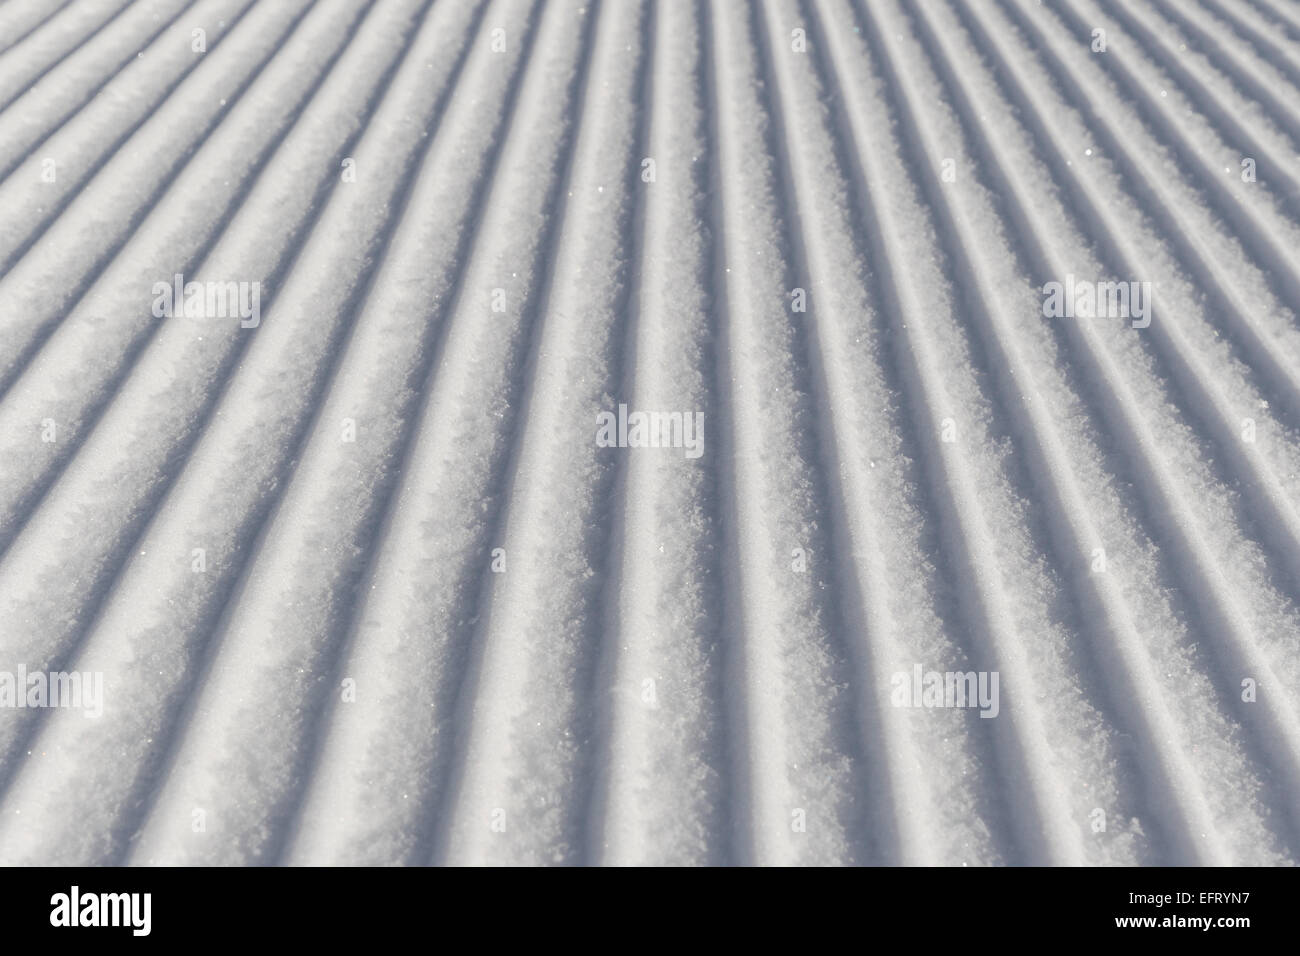 Skiing background - fresh snow on ski slope in the dolomites Stock Photo